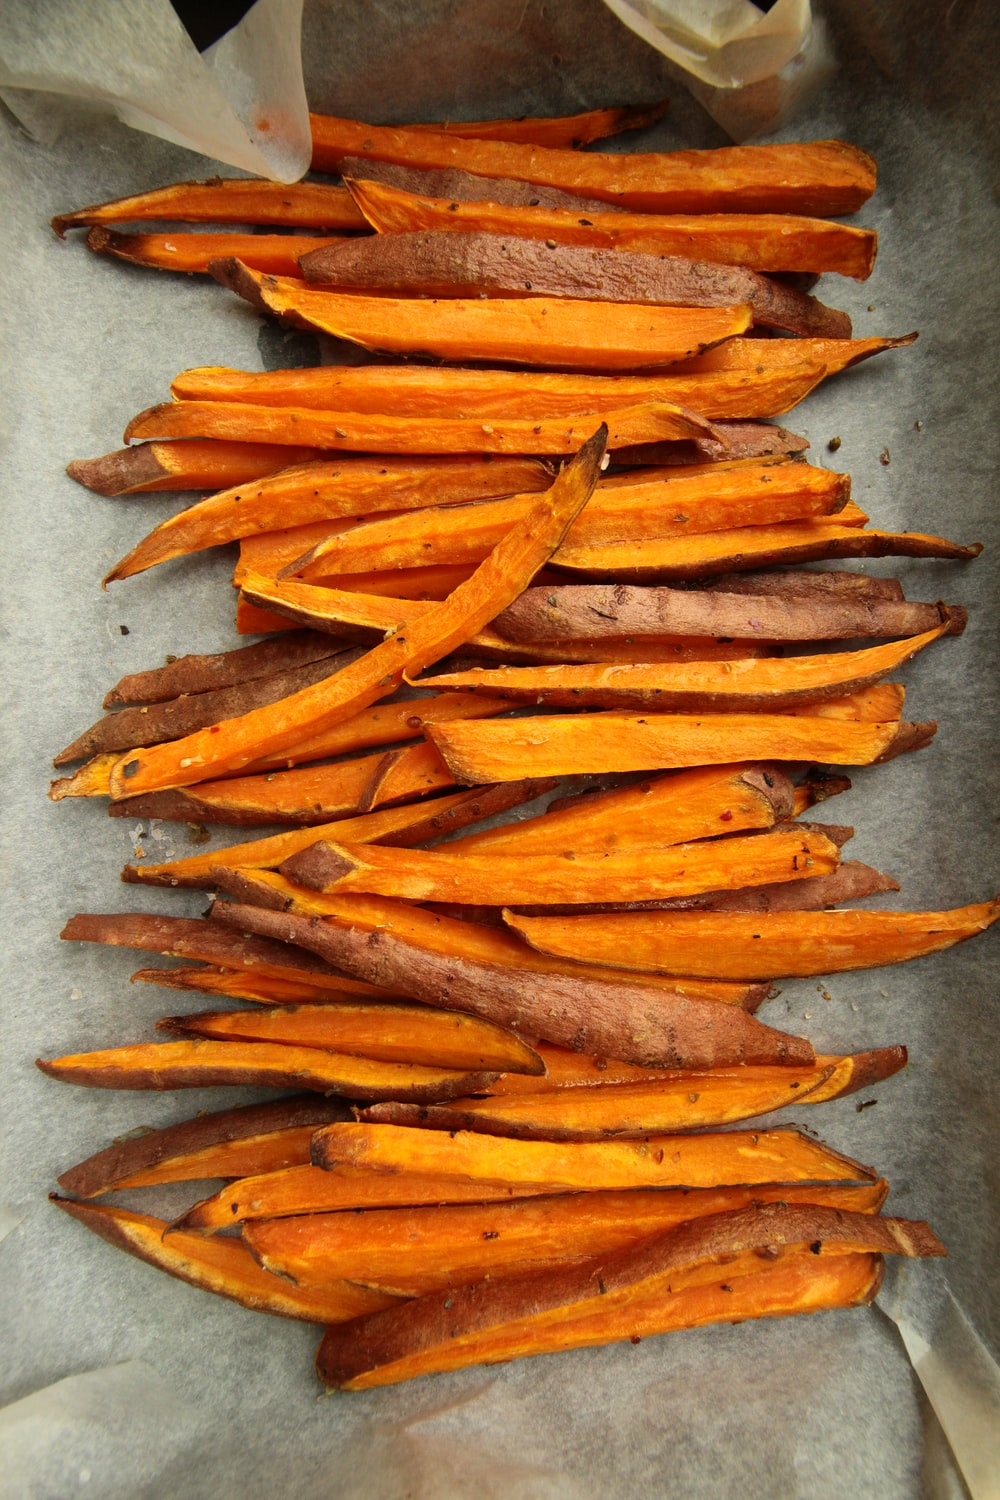 sliced carrots on gray surface